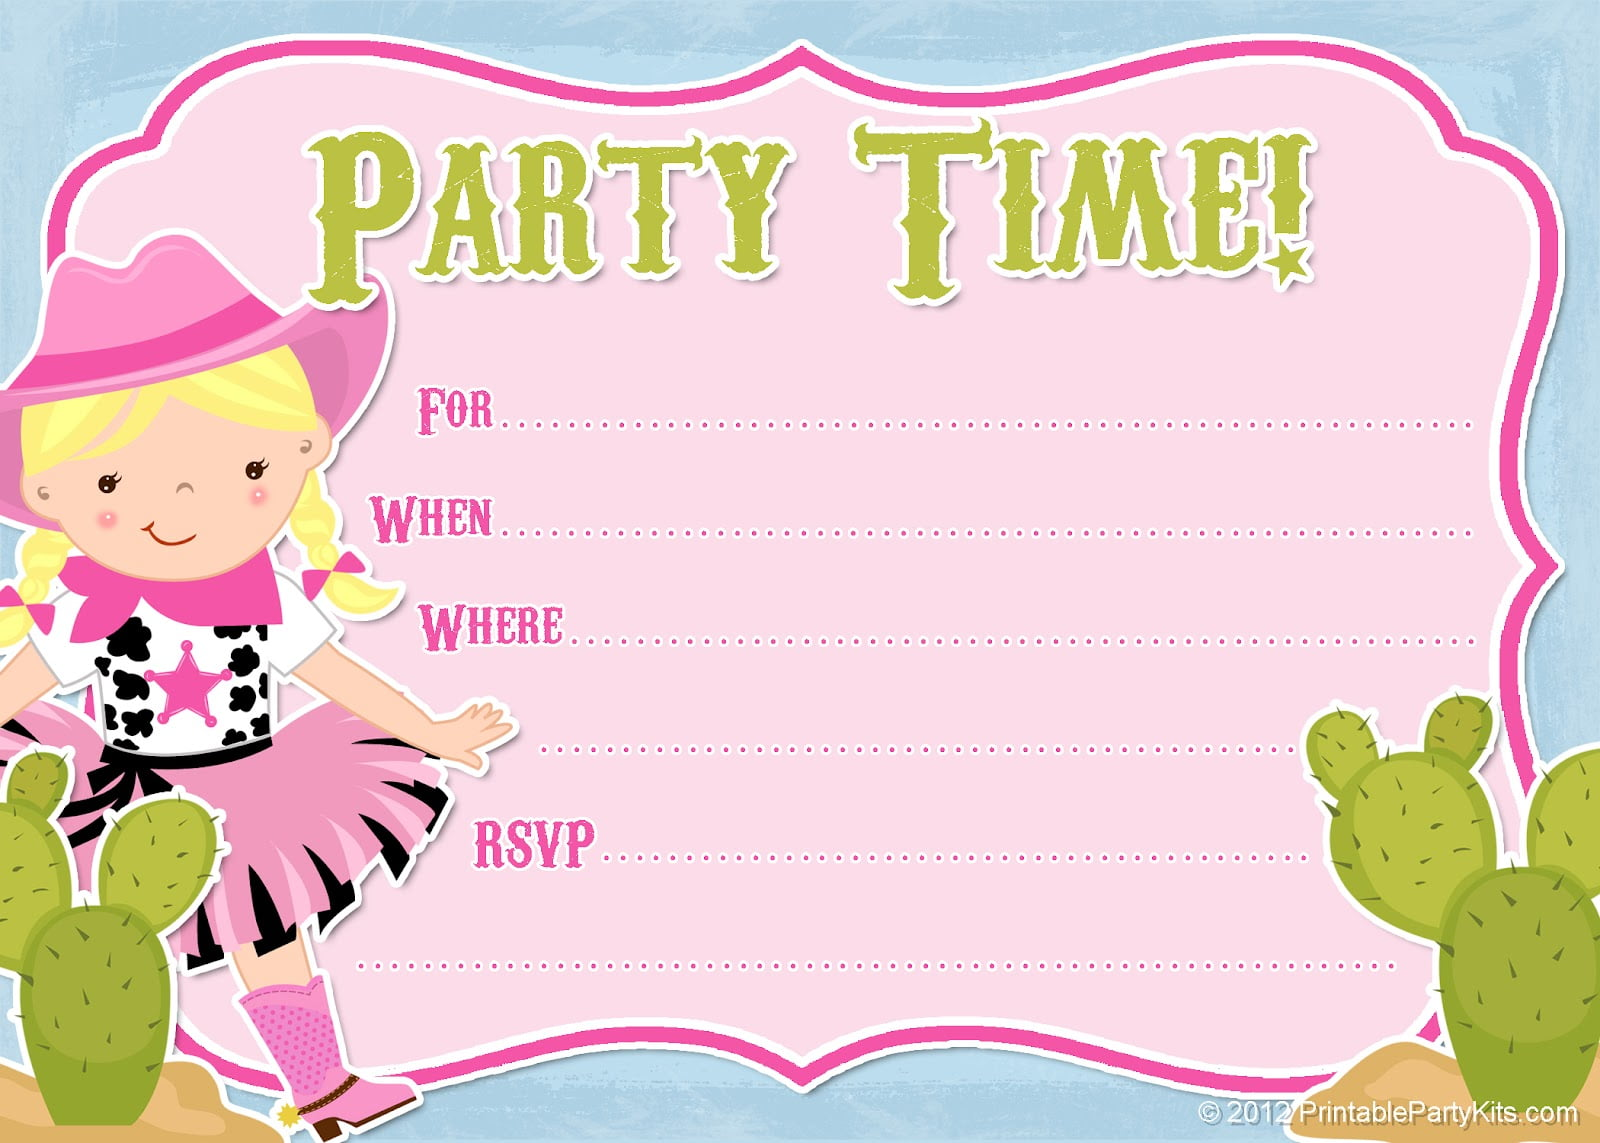 It's just an image of Enterprising Printable Party Invites